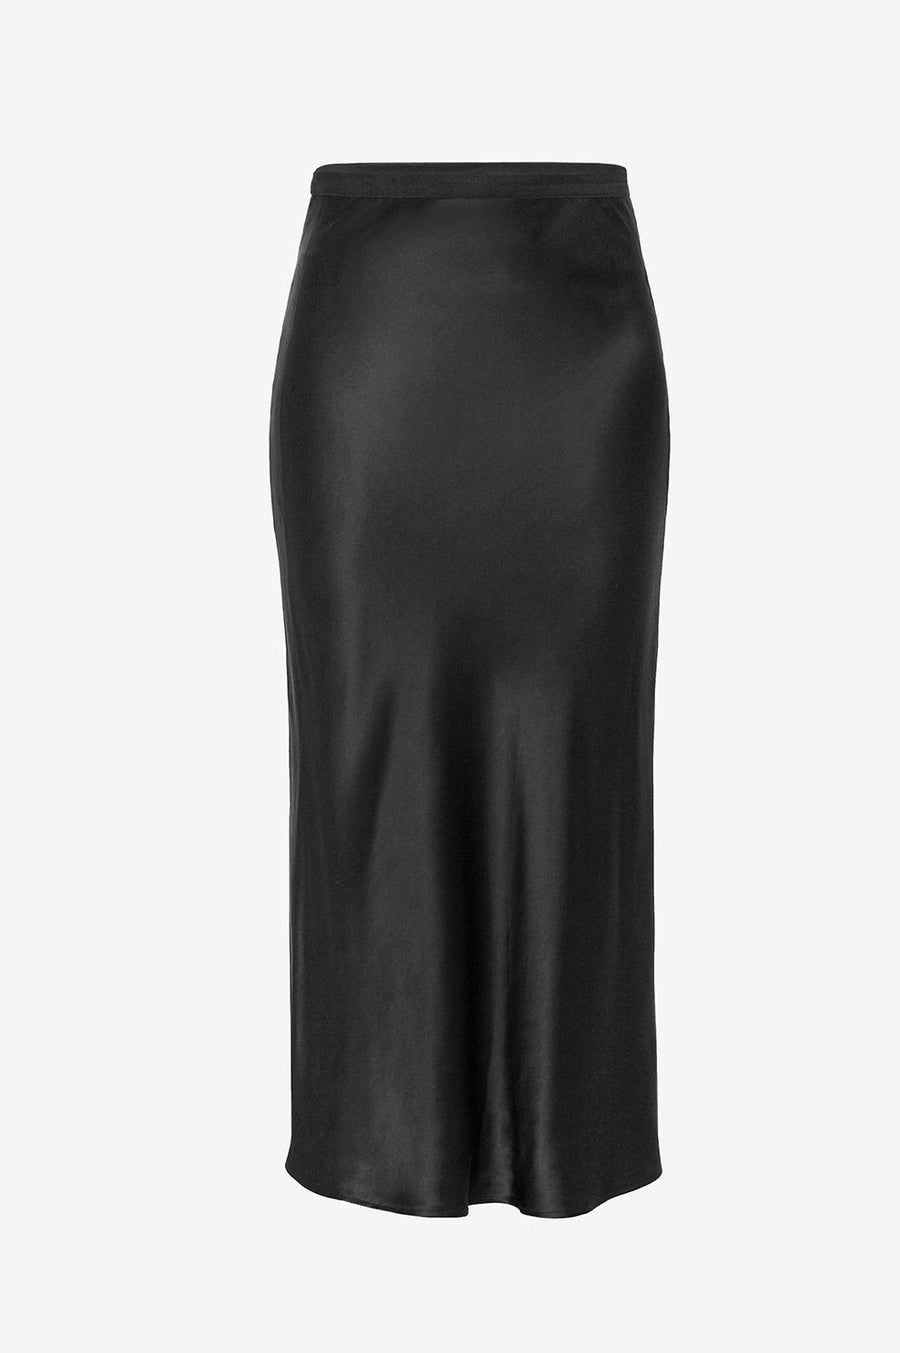 Bar Silk Skirt - Black - Pavilion